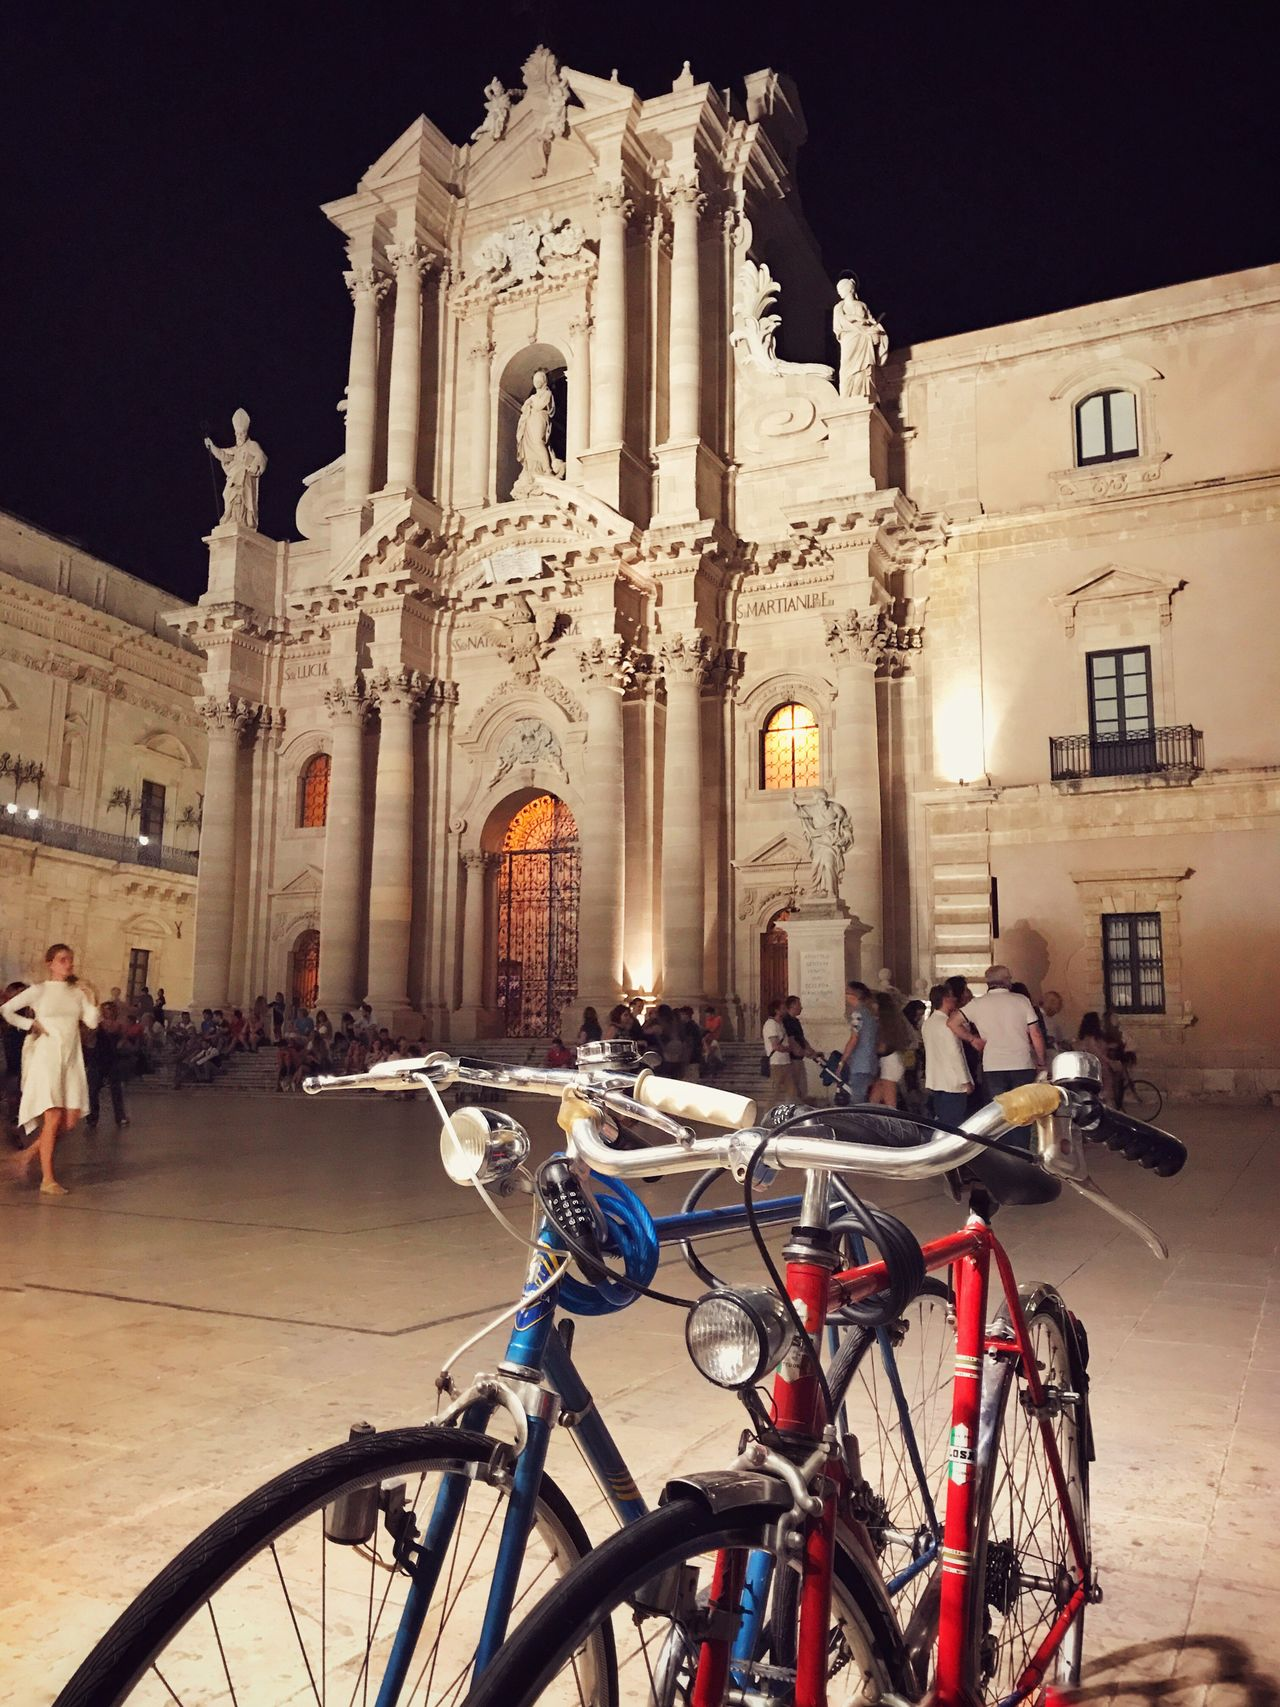 Duomo - Ortigia Gianni Lo Turco Ortigia By Night Bicycle Architecture Built Structure Mode Of Transport Building Exterior Religion Transportation Spirituality Land Vehicle Travel Travel Destinations Architectural Column Place Of Worship Statue Real People City Outdoors Illuminated Night Sky Architecture_collection Architecture